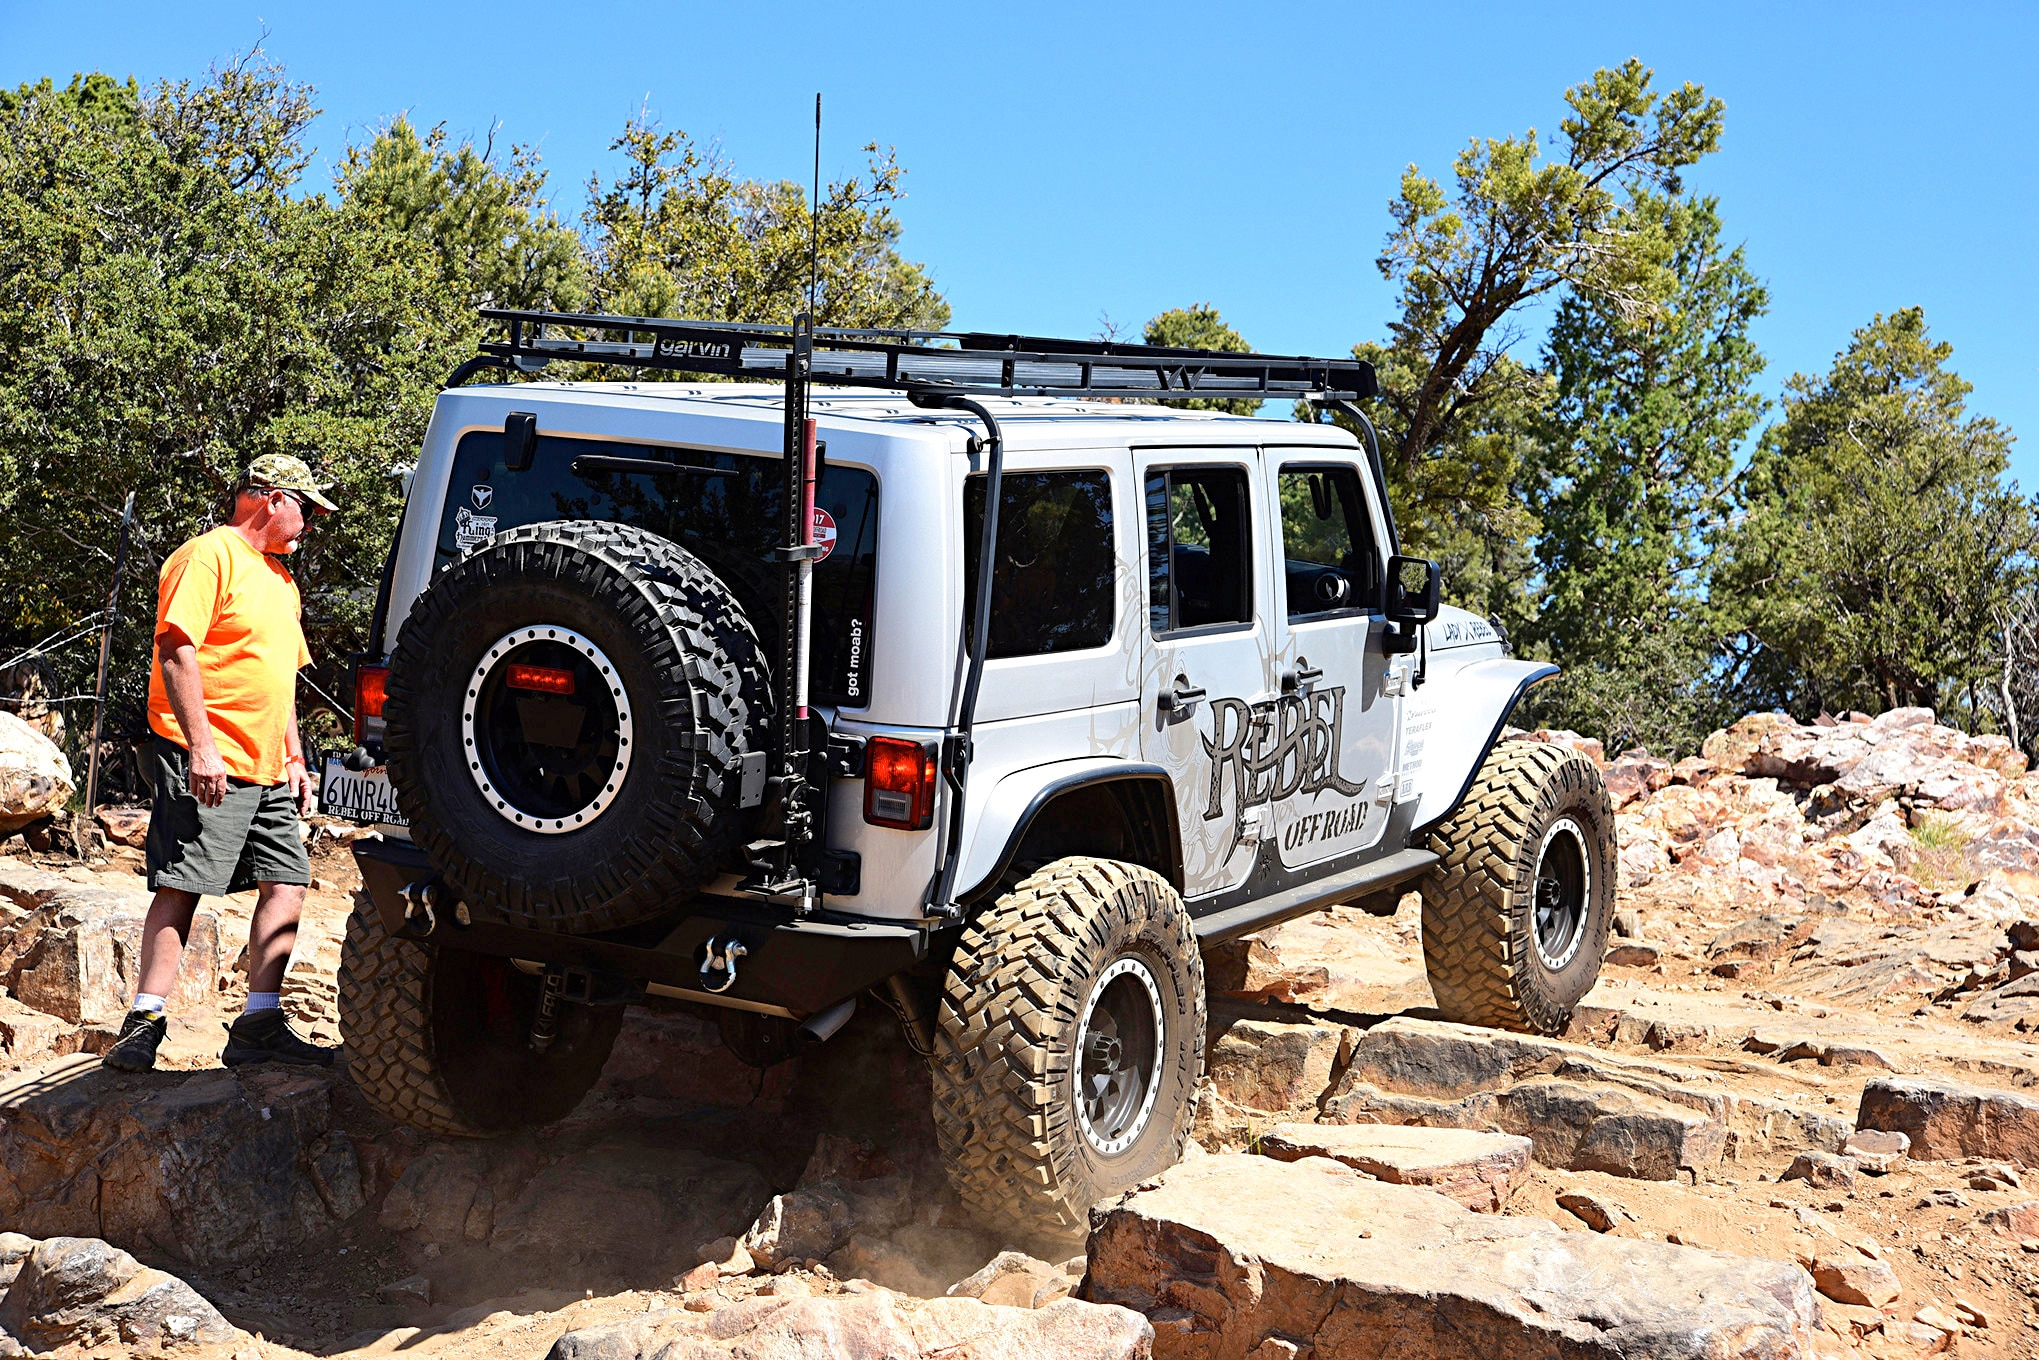 027 jeep event big bear forest fest 2019 inland empire